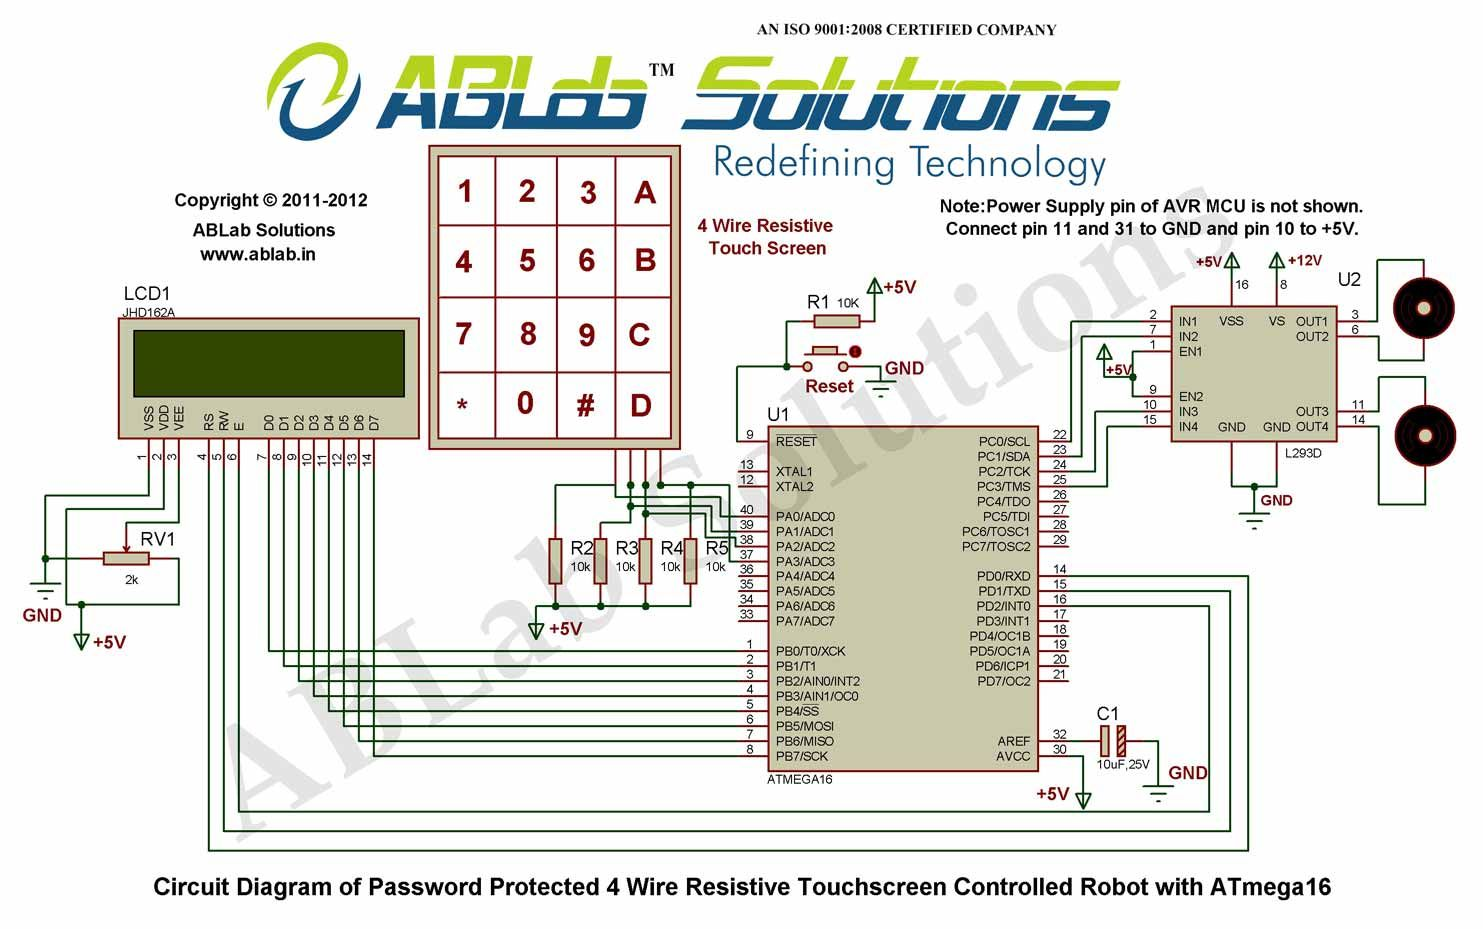 small resolution of password protected 4 wire resistive touchscreen controlled robot touch screen circuit diagram